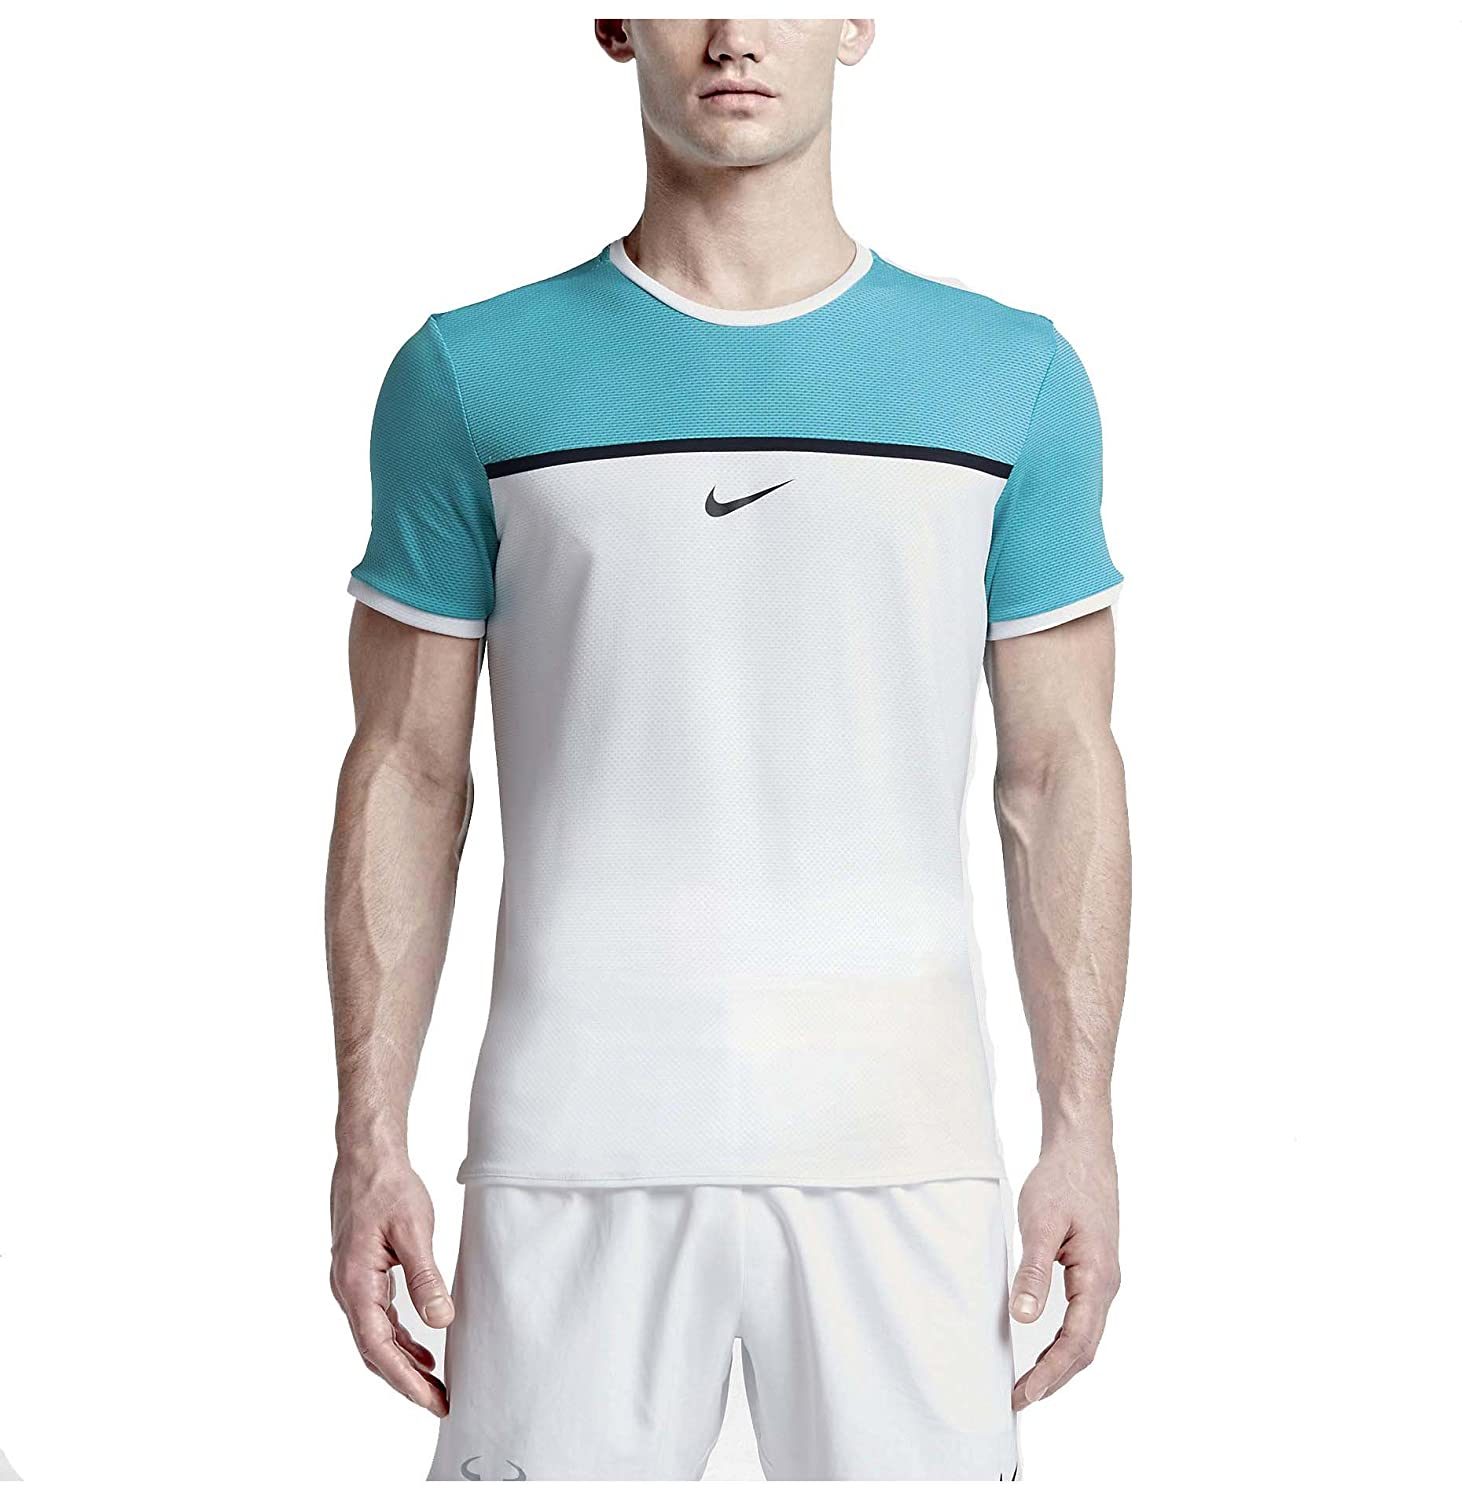 Amazon.com: Nike Men's Dri-Fit Court Challenger Premier Rafa Tennis Shirt-Omega  Blue/White-XL: Sports & Outdoors